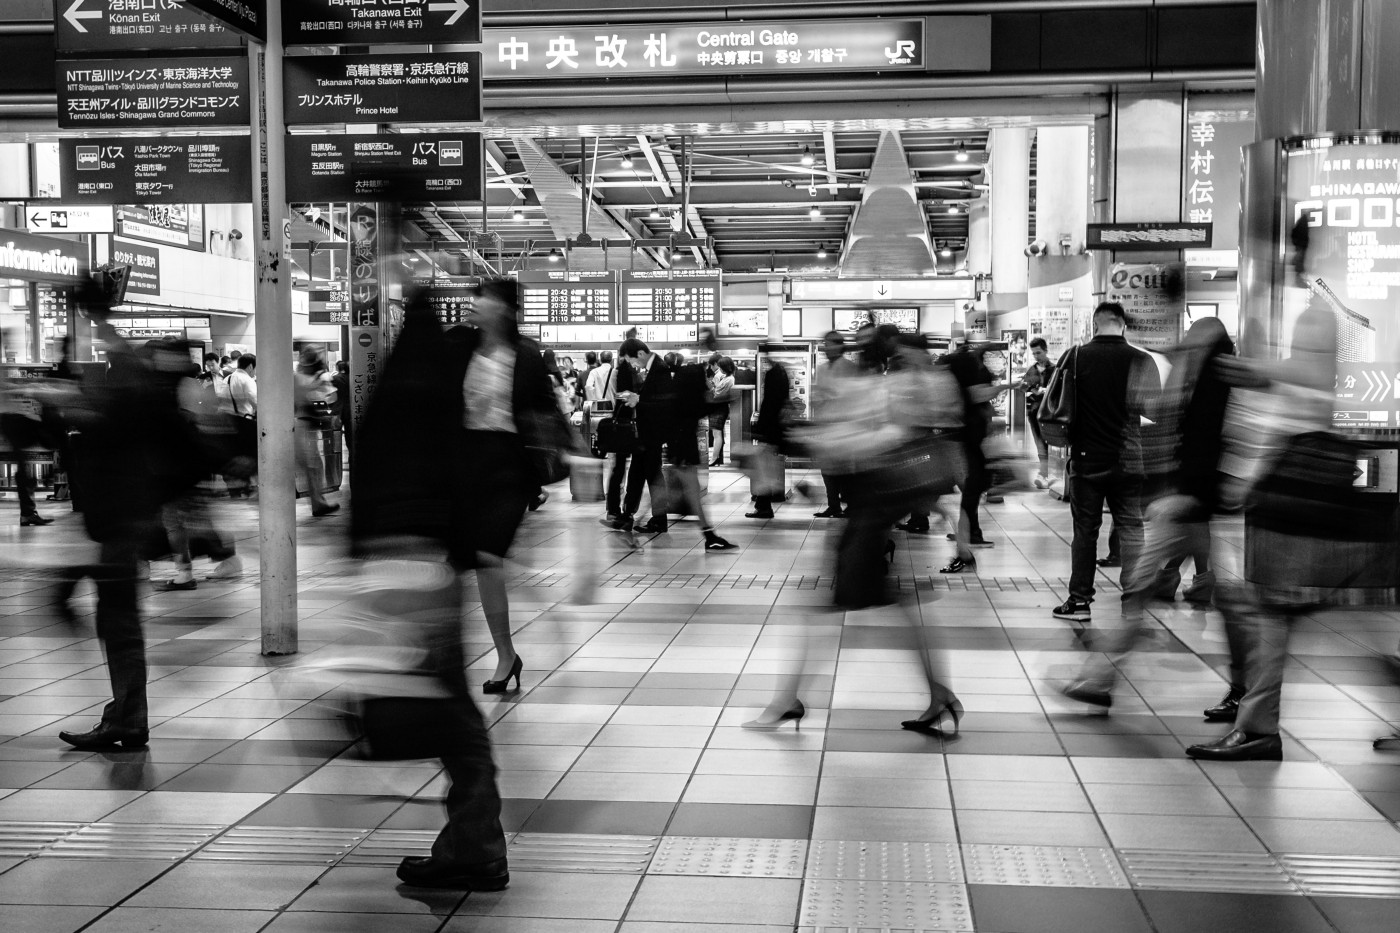 Many people busy and in blur at Tokyo's Shinagawa subway station